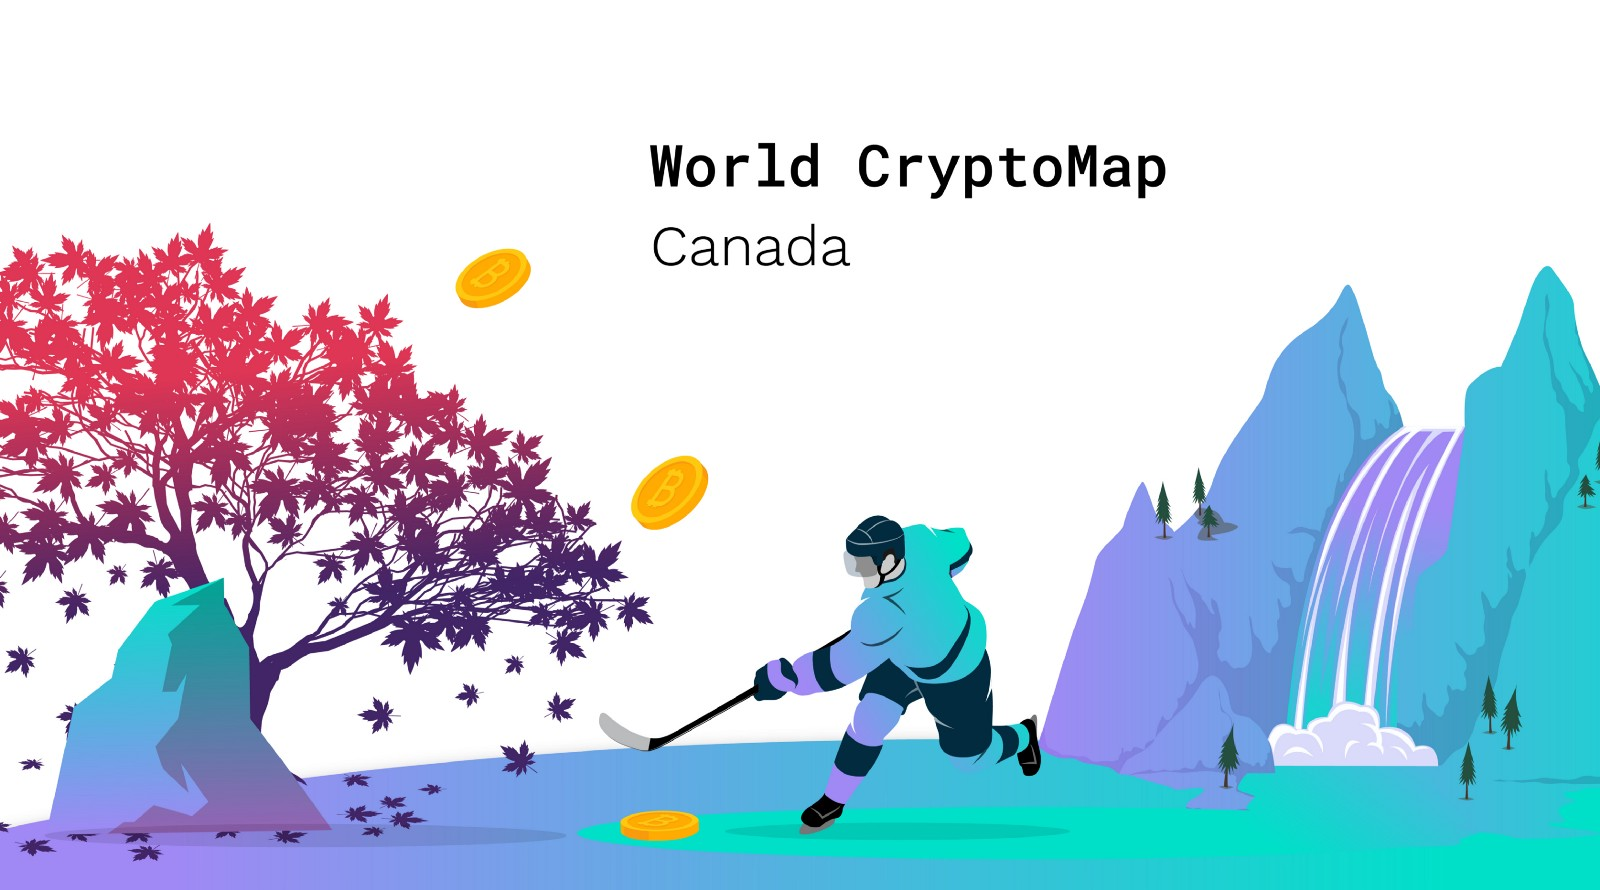 /good-mining-climate-ethereum-legacy-government-initiatives-what-drives-crypto-industry-in-canada-7ab4ffad40c6 feature image